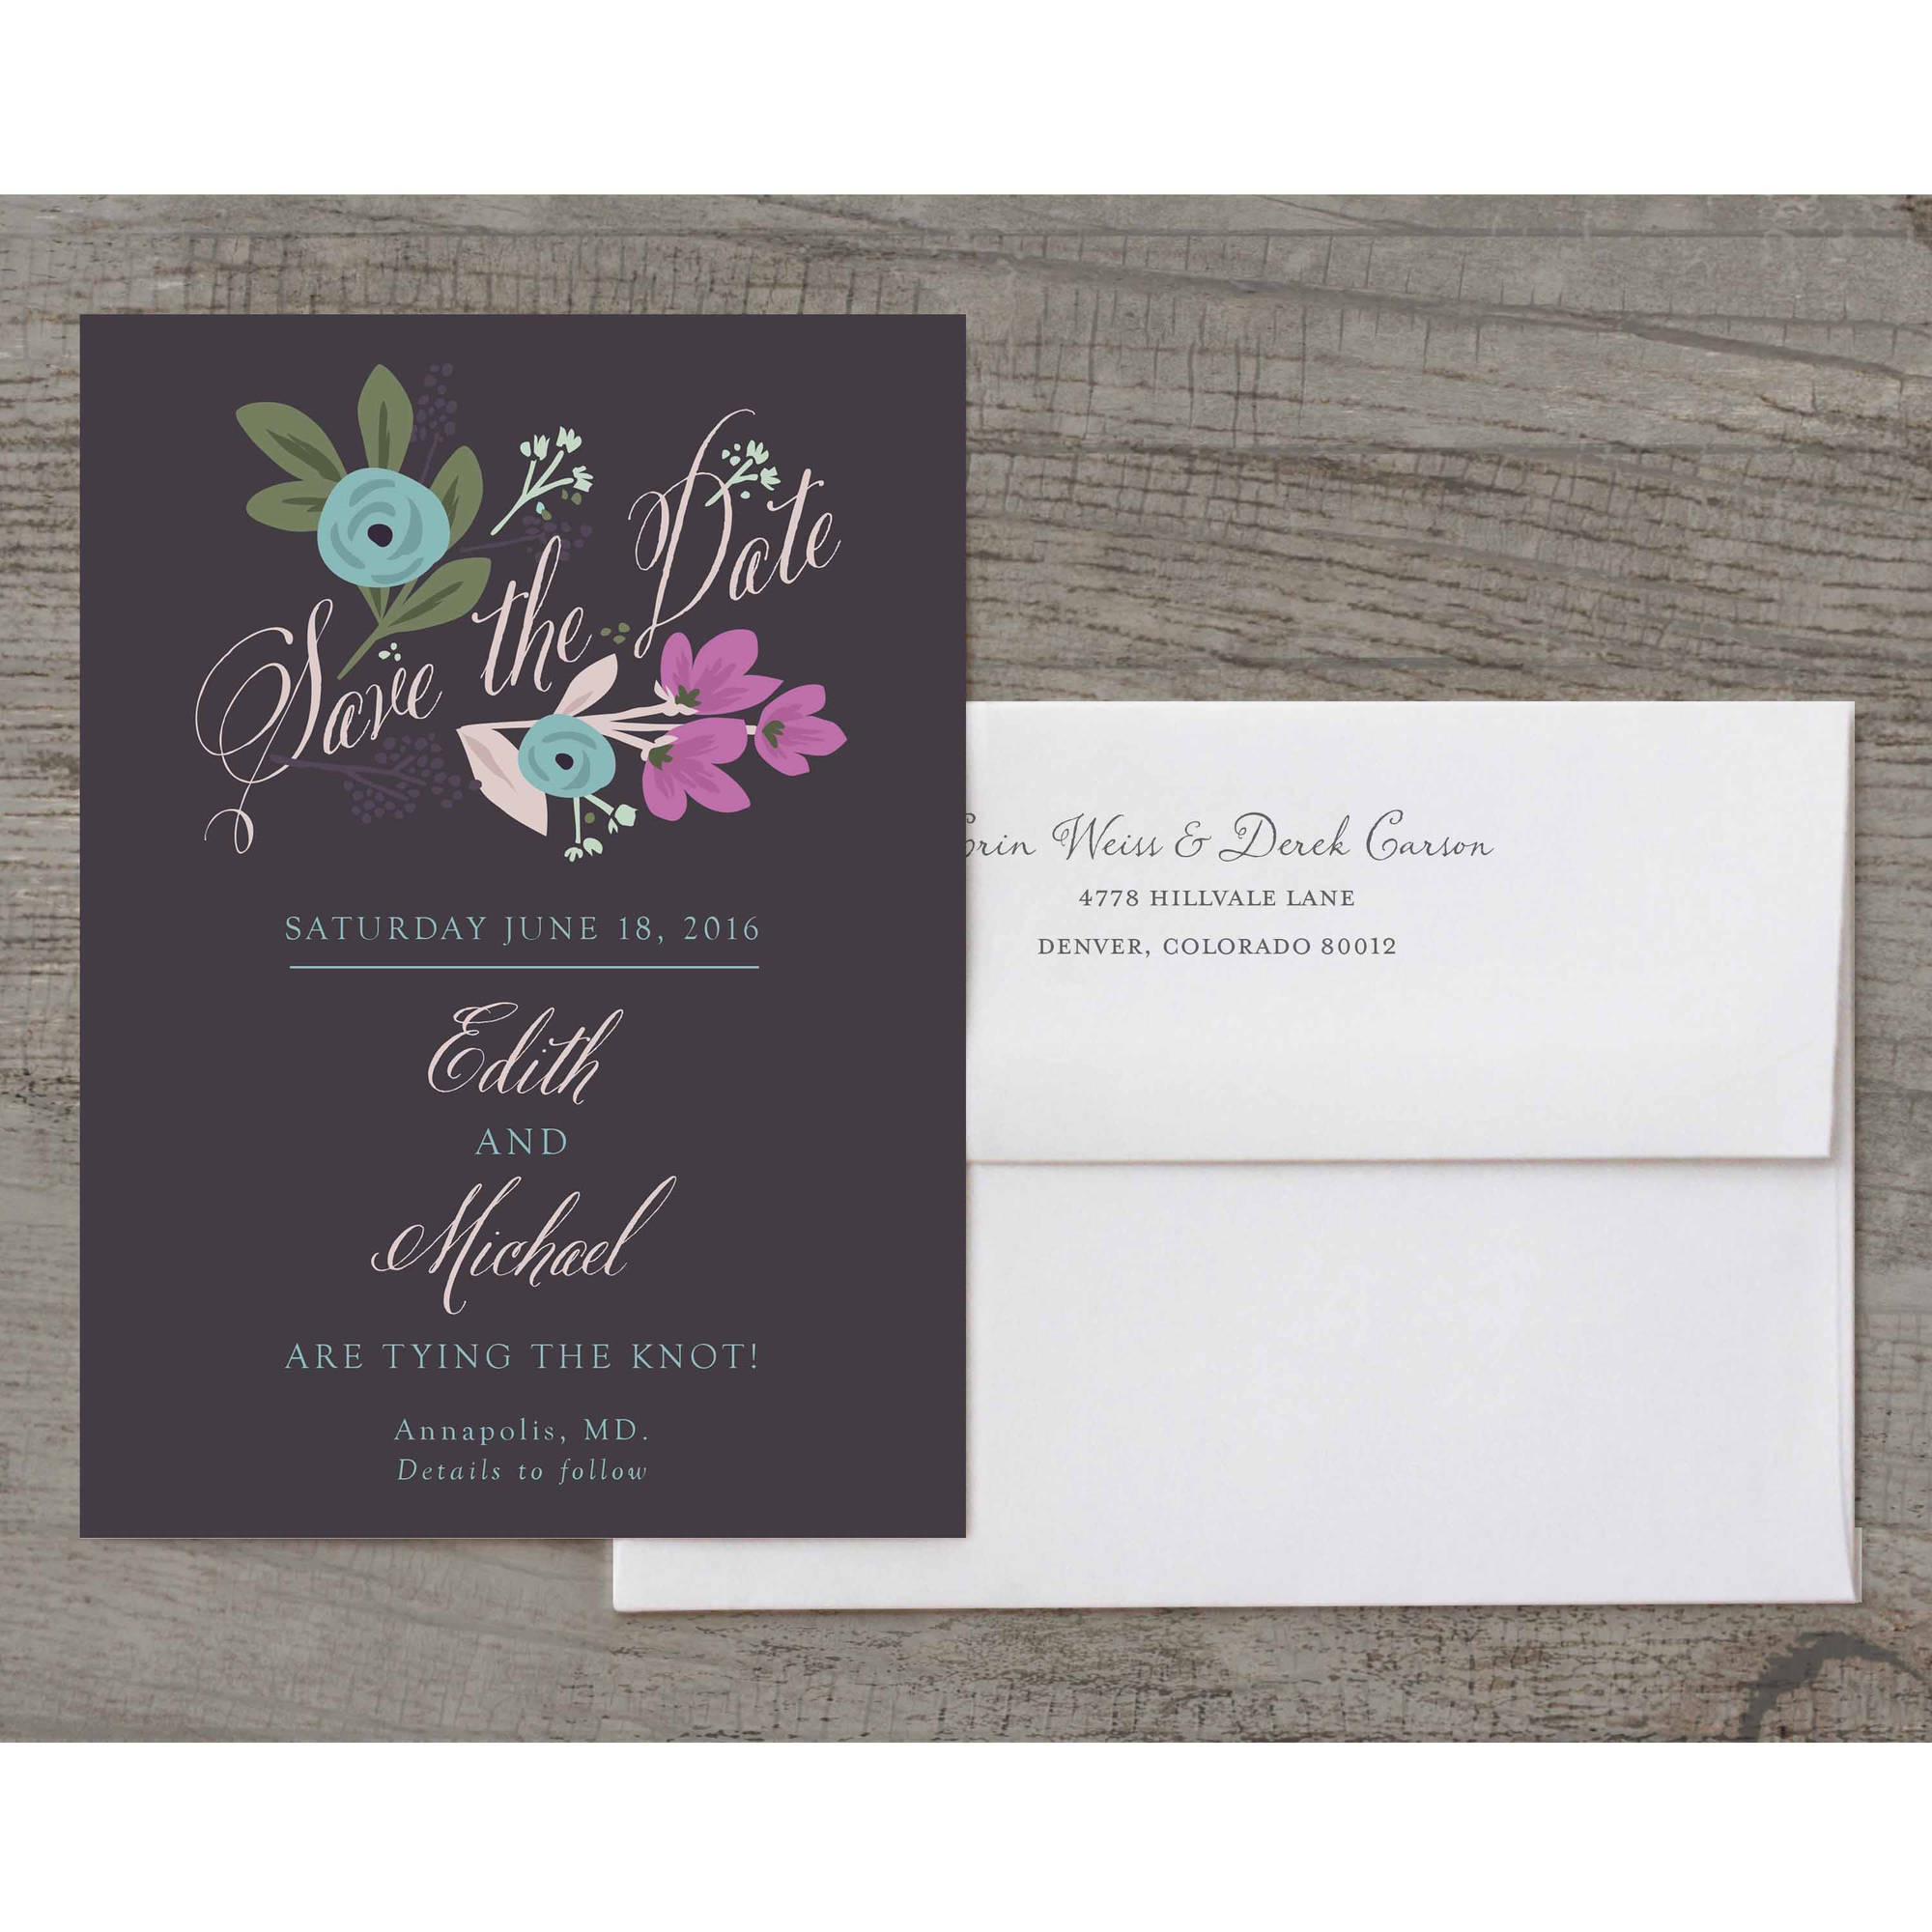 Sketchbook Botanical Deluxe Save the Date